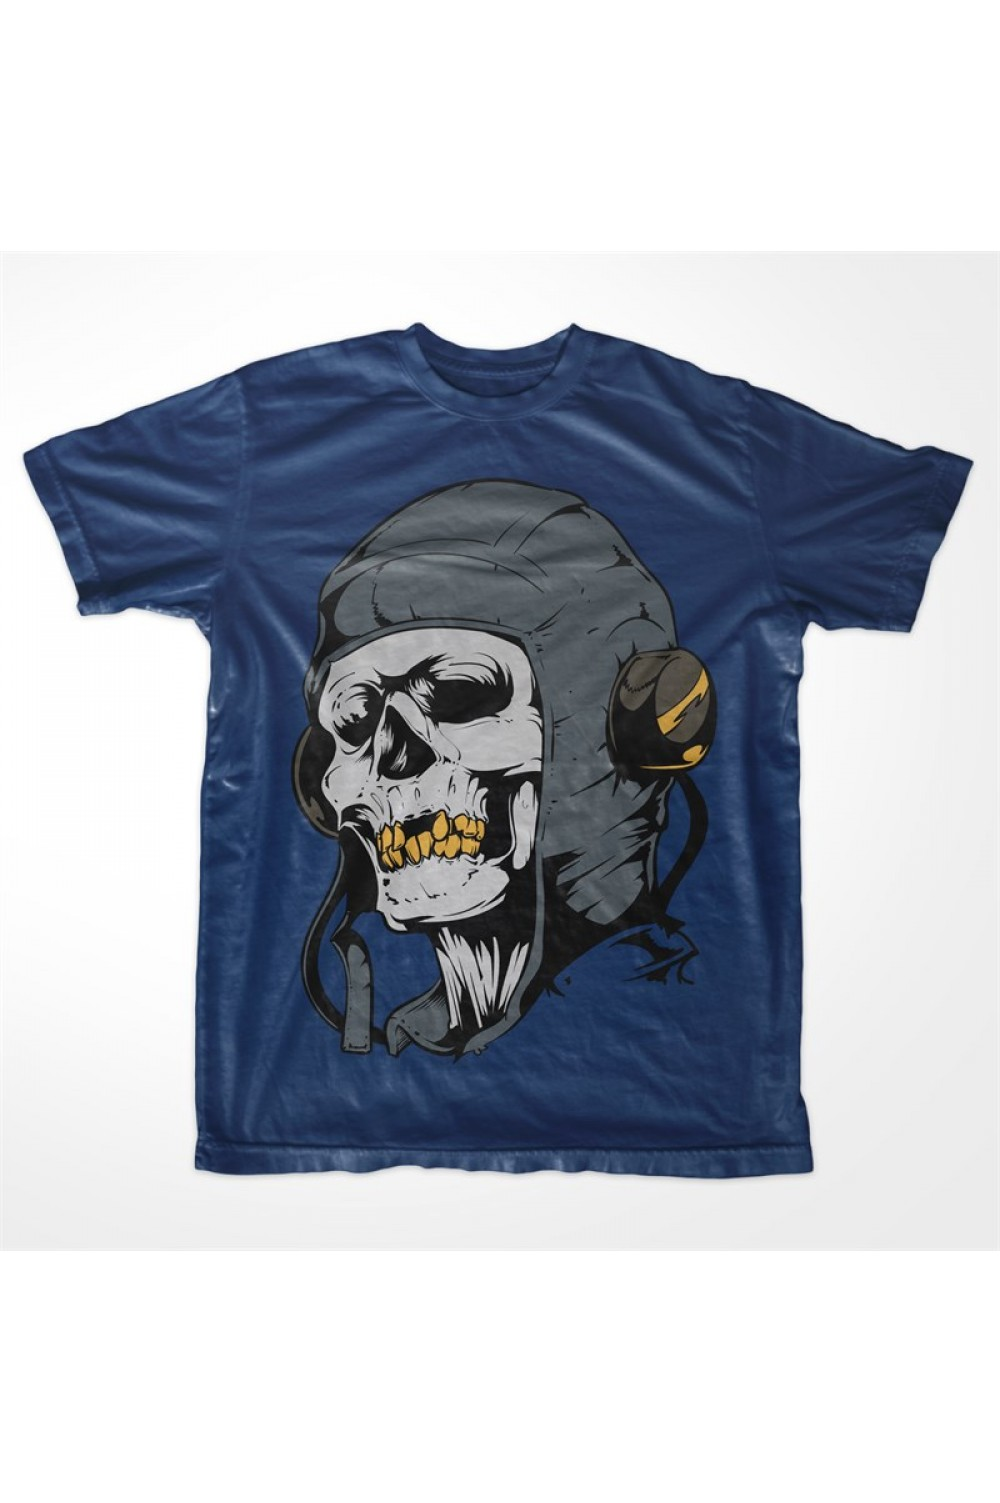 Music Skull Men Printed T-shirt 4003